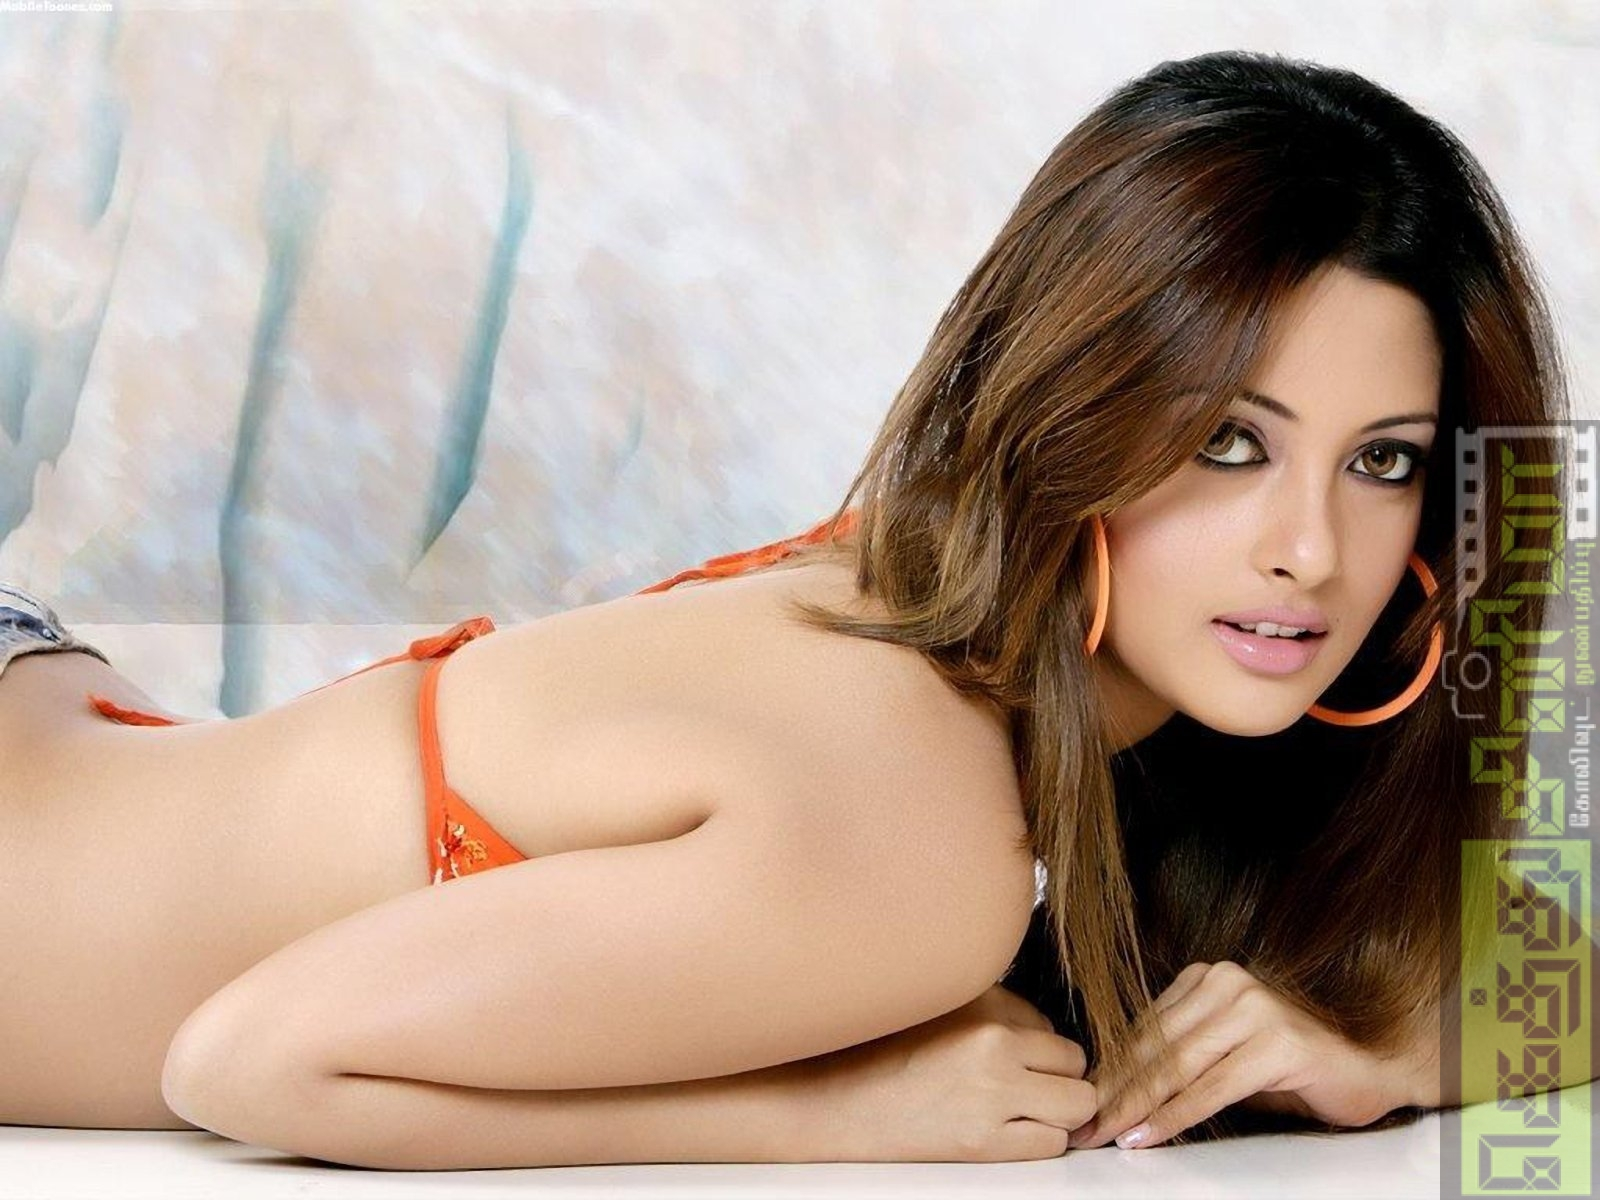 Riya sen opens up about being sexualized